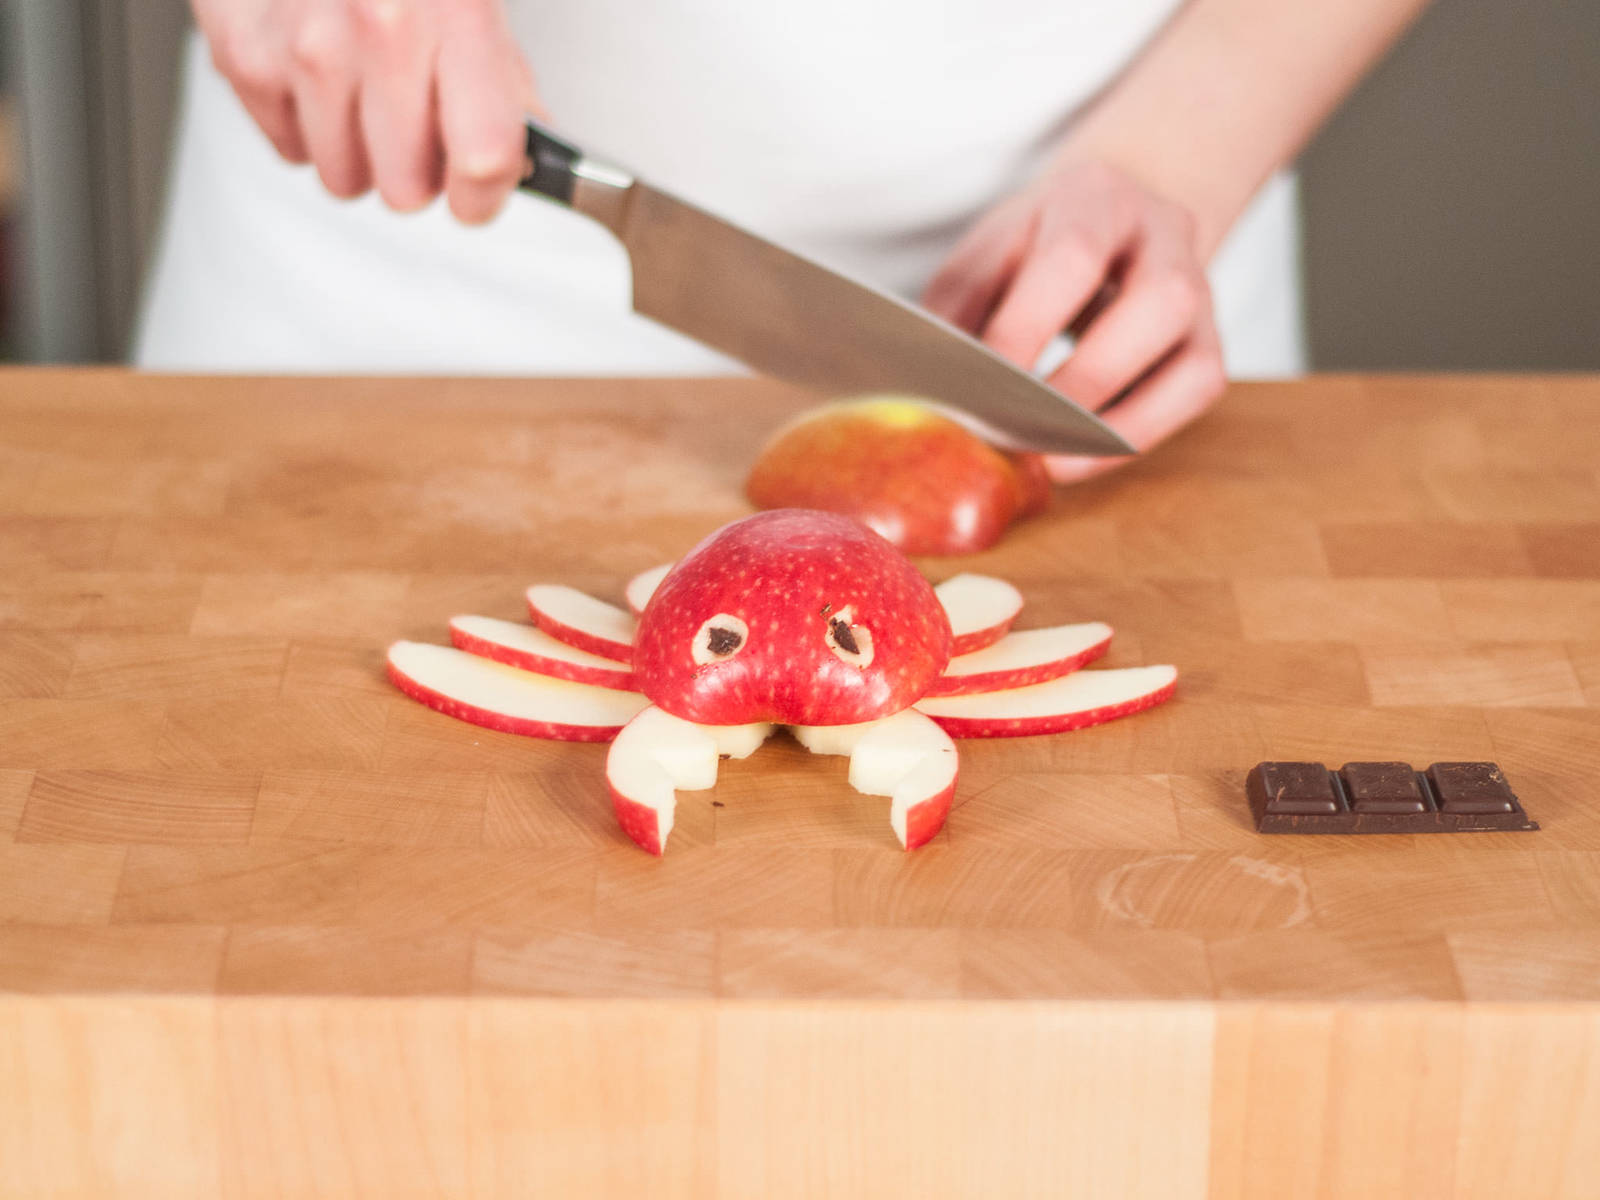 For the crab, halve one apple and cut out the core. Core and cut the other half into thin slices for legs, and cut serrated edges into two slices for the claws. Carve out small holes for the eyes, and stick small pieces of chocolate into the holes. If desired, use toothpicks to hold everything together.